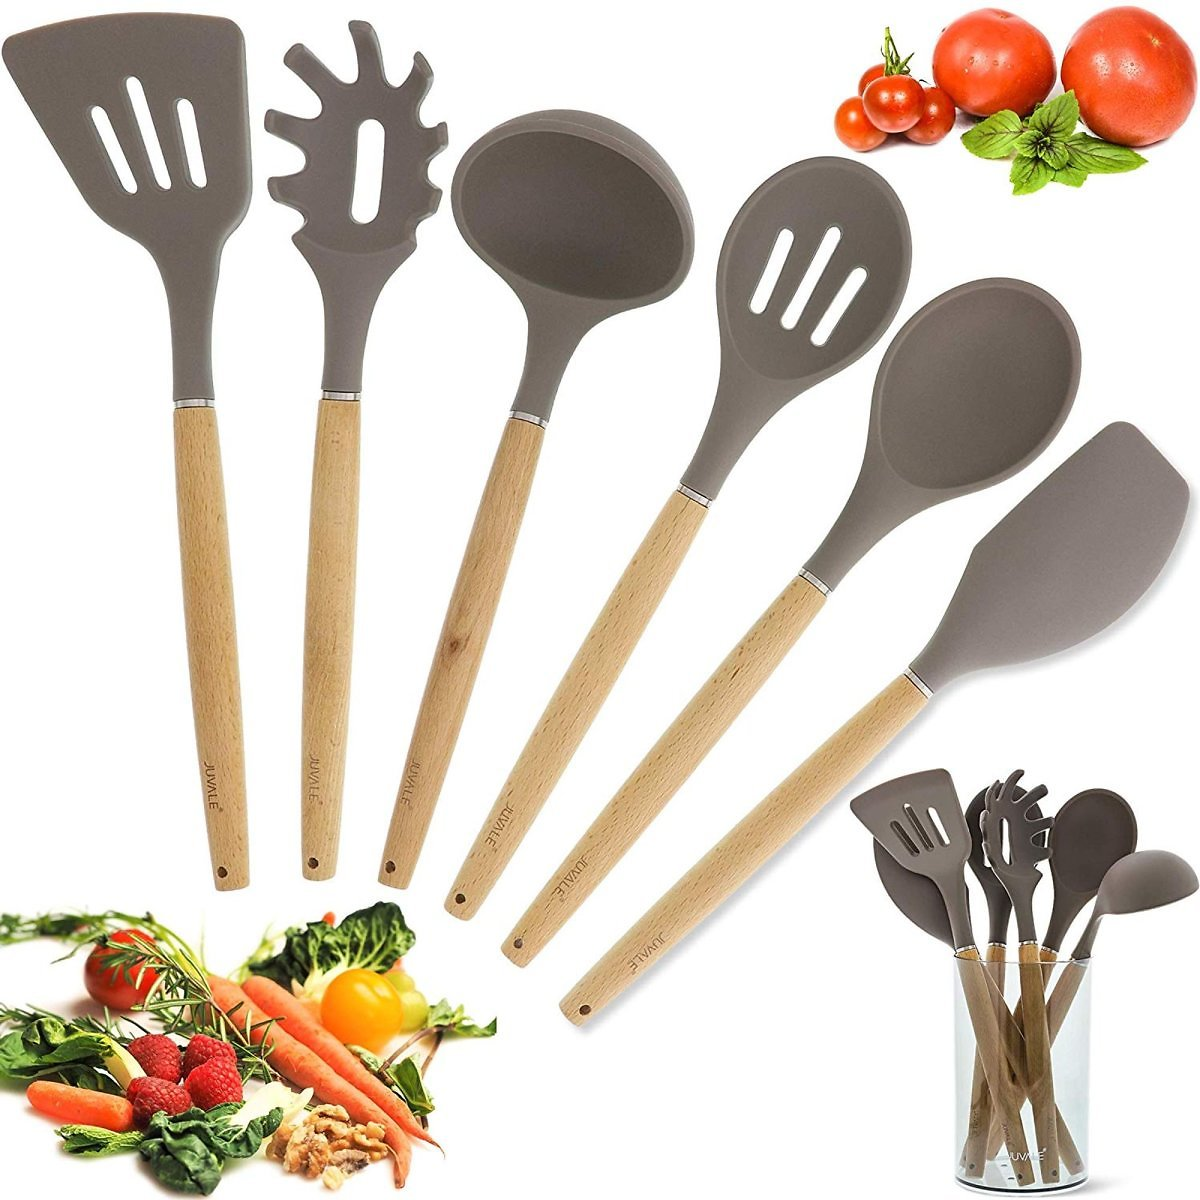 Kitchen Utensil Set - Gourmet Non-Stick Silicone Cooking Tools with Bamboo Handles - Ladle